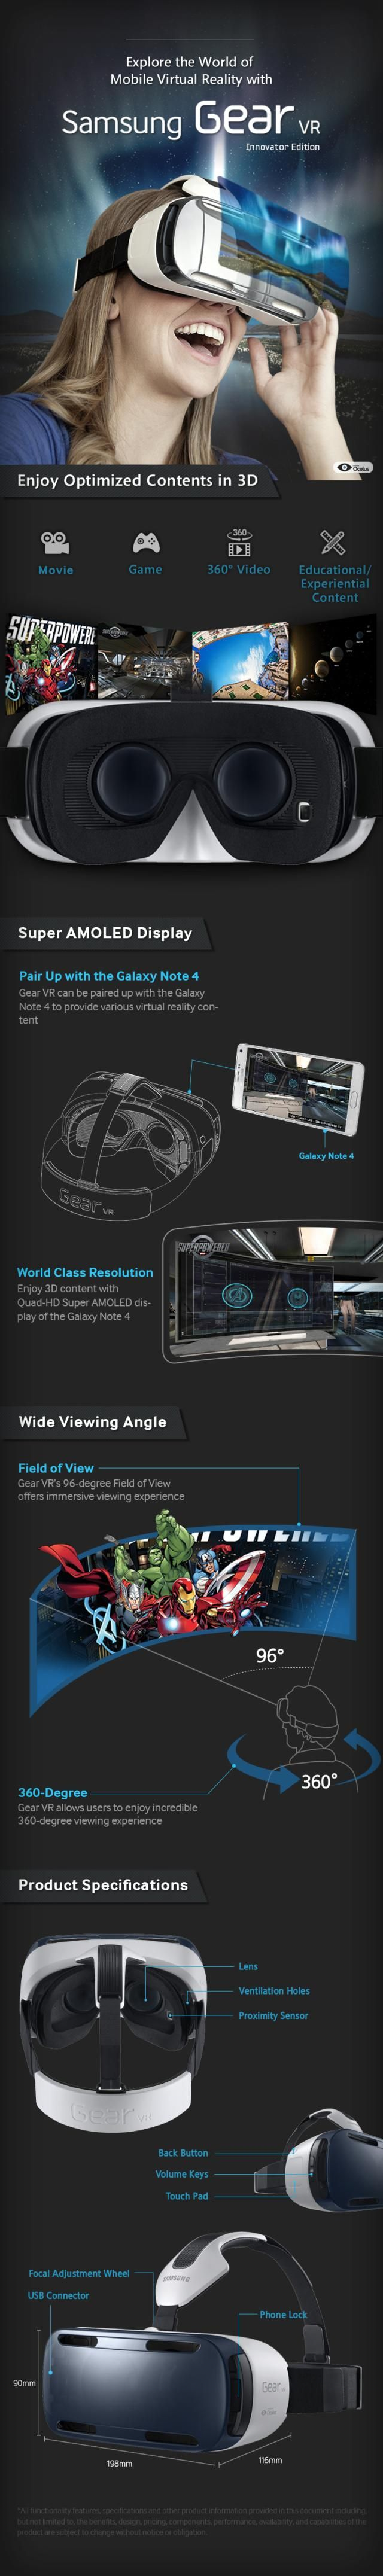 Samsung Galaxy Gear VR (Explore the world of mobile virtual reality